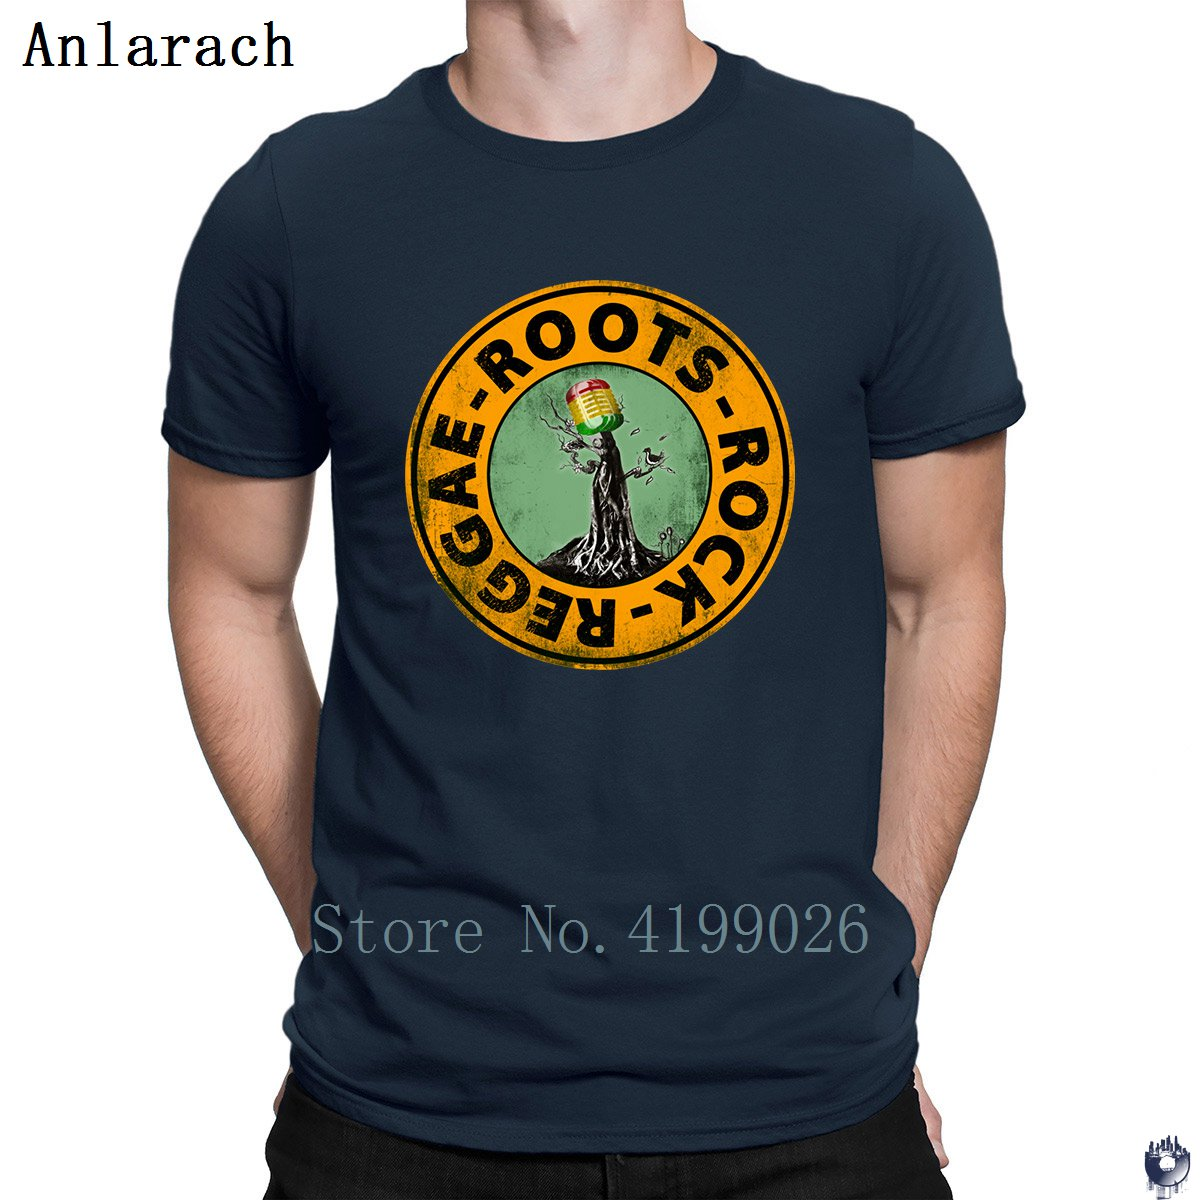 bffddafe7 Cheap T-Shirts, Buy Directly from China Suppliers:Roots Rock Reggae. t